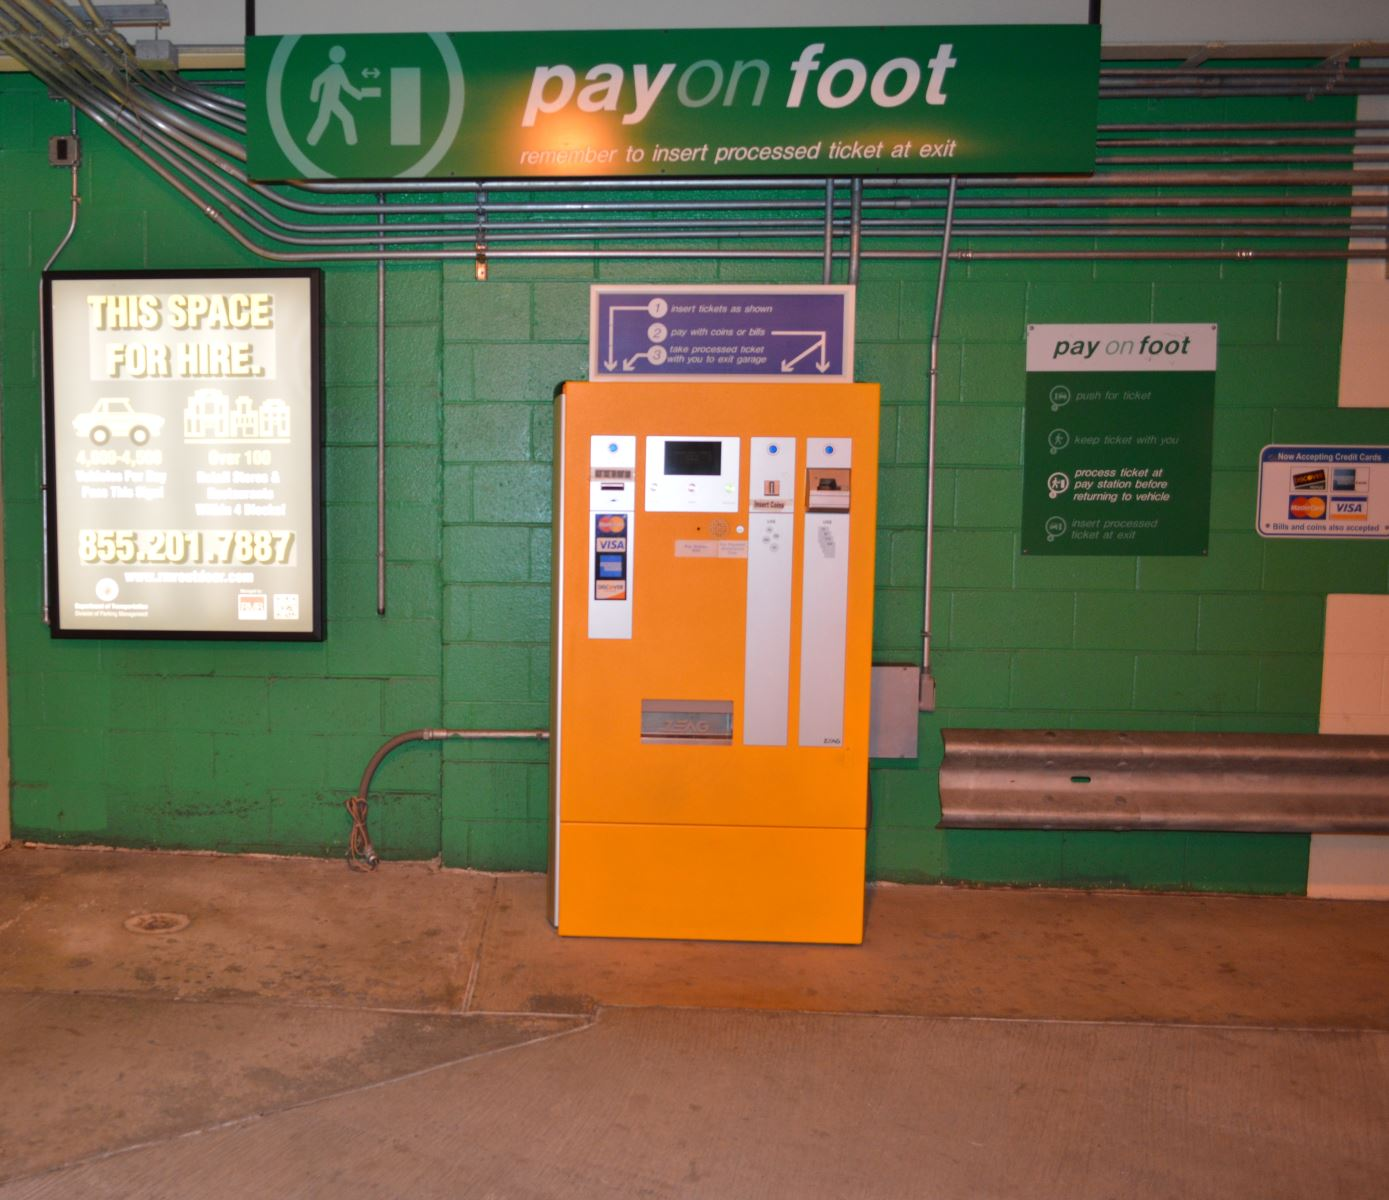 Pay on Foot